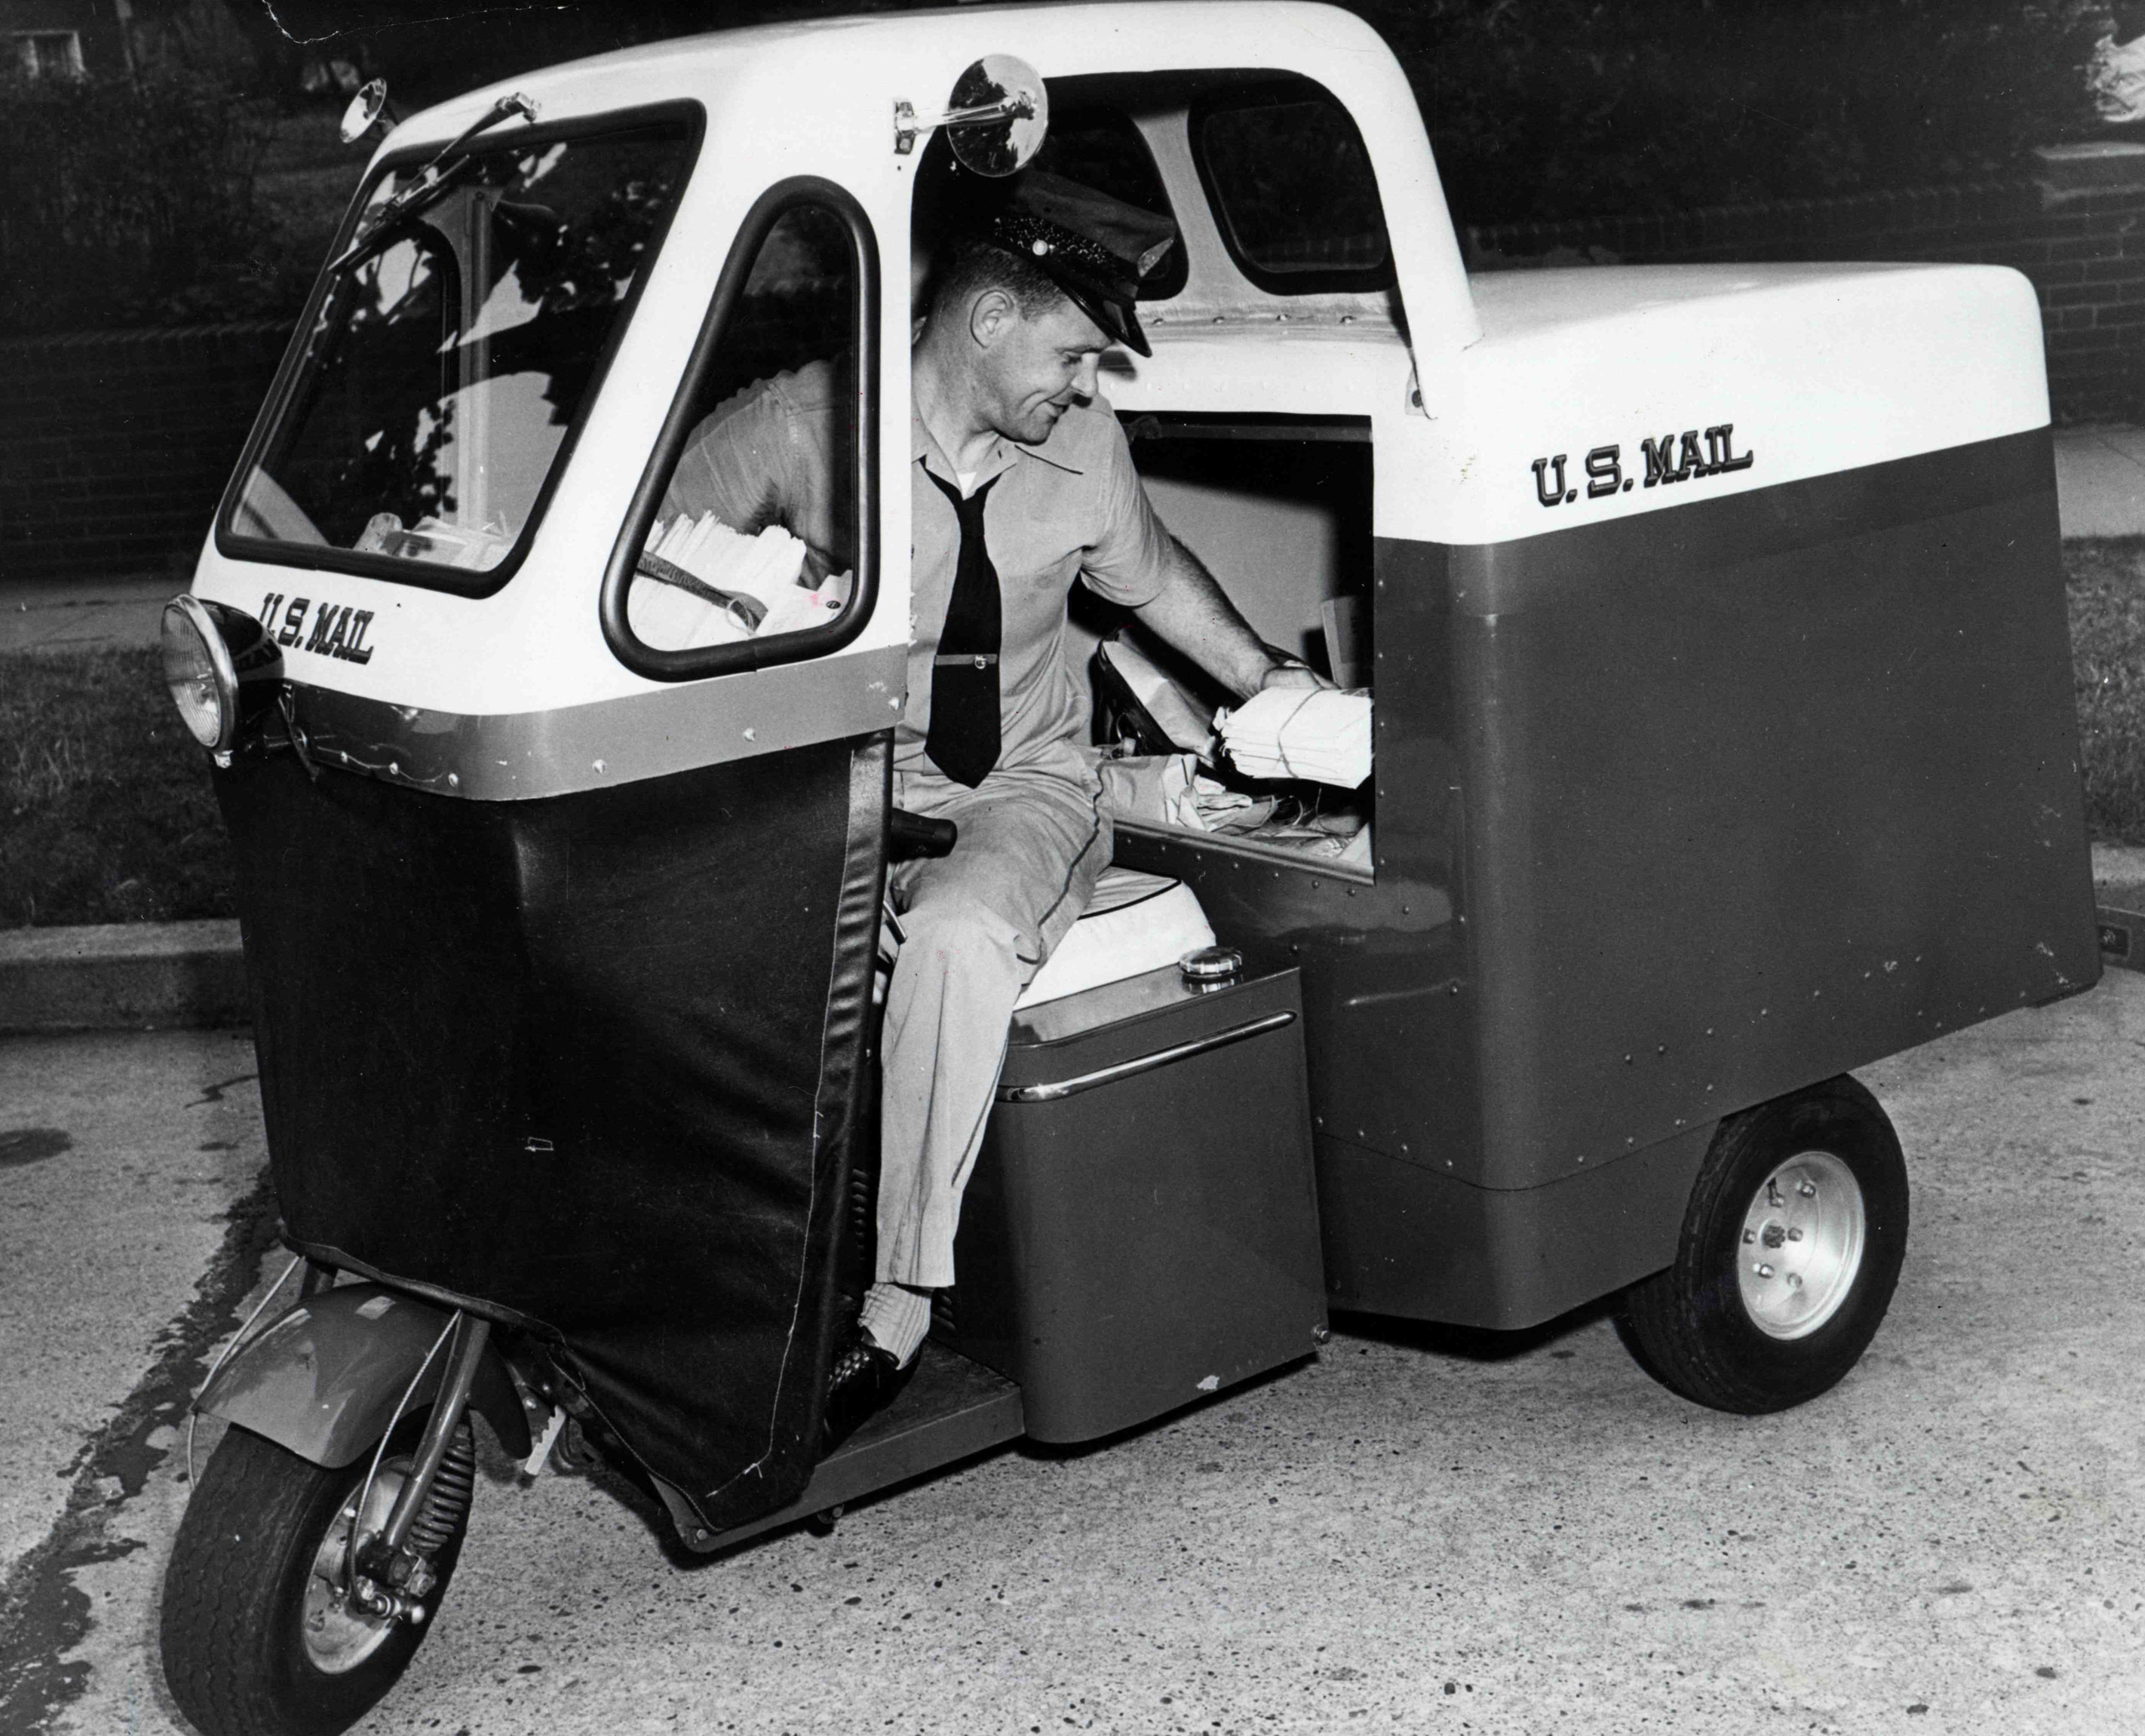 In 1955, a city letter carrier is seated in a three-wheeled  mailster  motor vehicle. Carriers used these vehicles to carry the ever-increasing amounts of mail that was being delivered to American households after end of the Second World War, but they could be immobilized in as little as three inches of snow, did not heat properly and were easily tipped over.